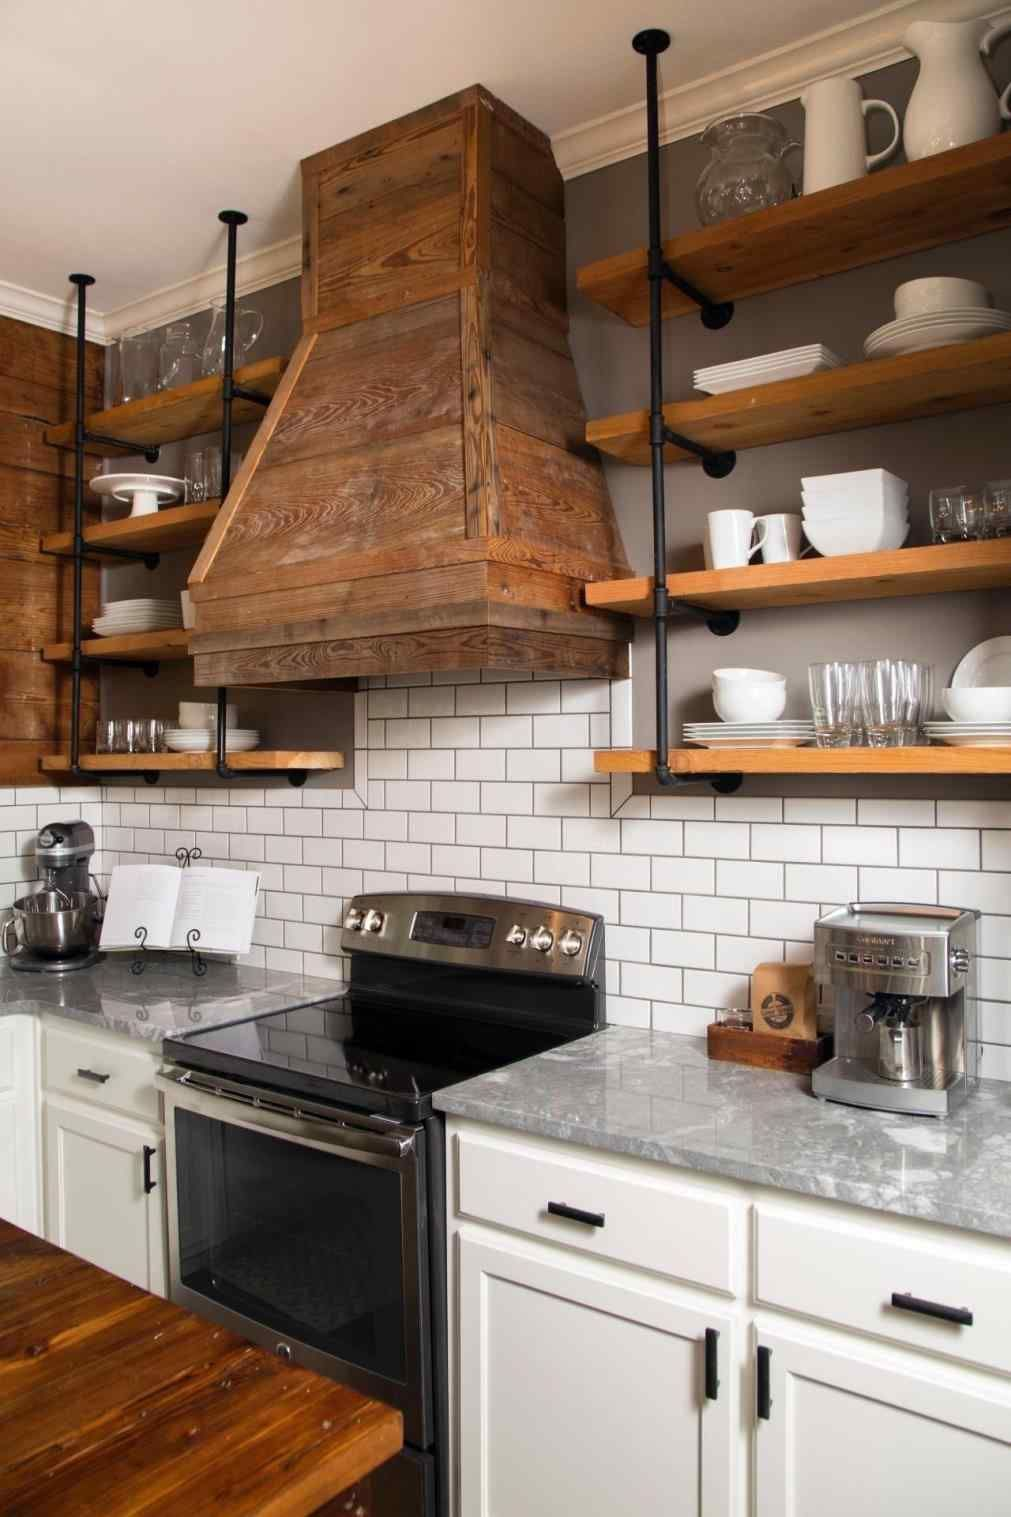 best 15 open kitchen cabinets no doors ideas rustic kitchen cabinets industrial farmhouse on kitchen cabinets no doors id=89935